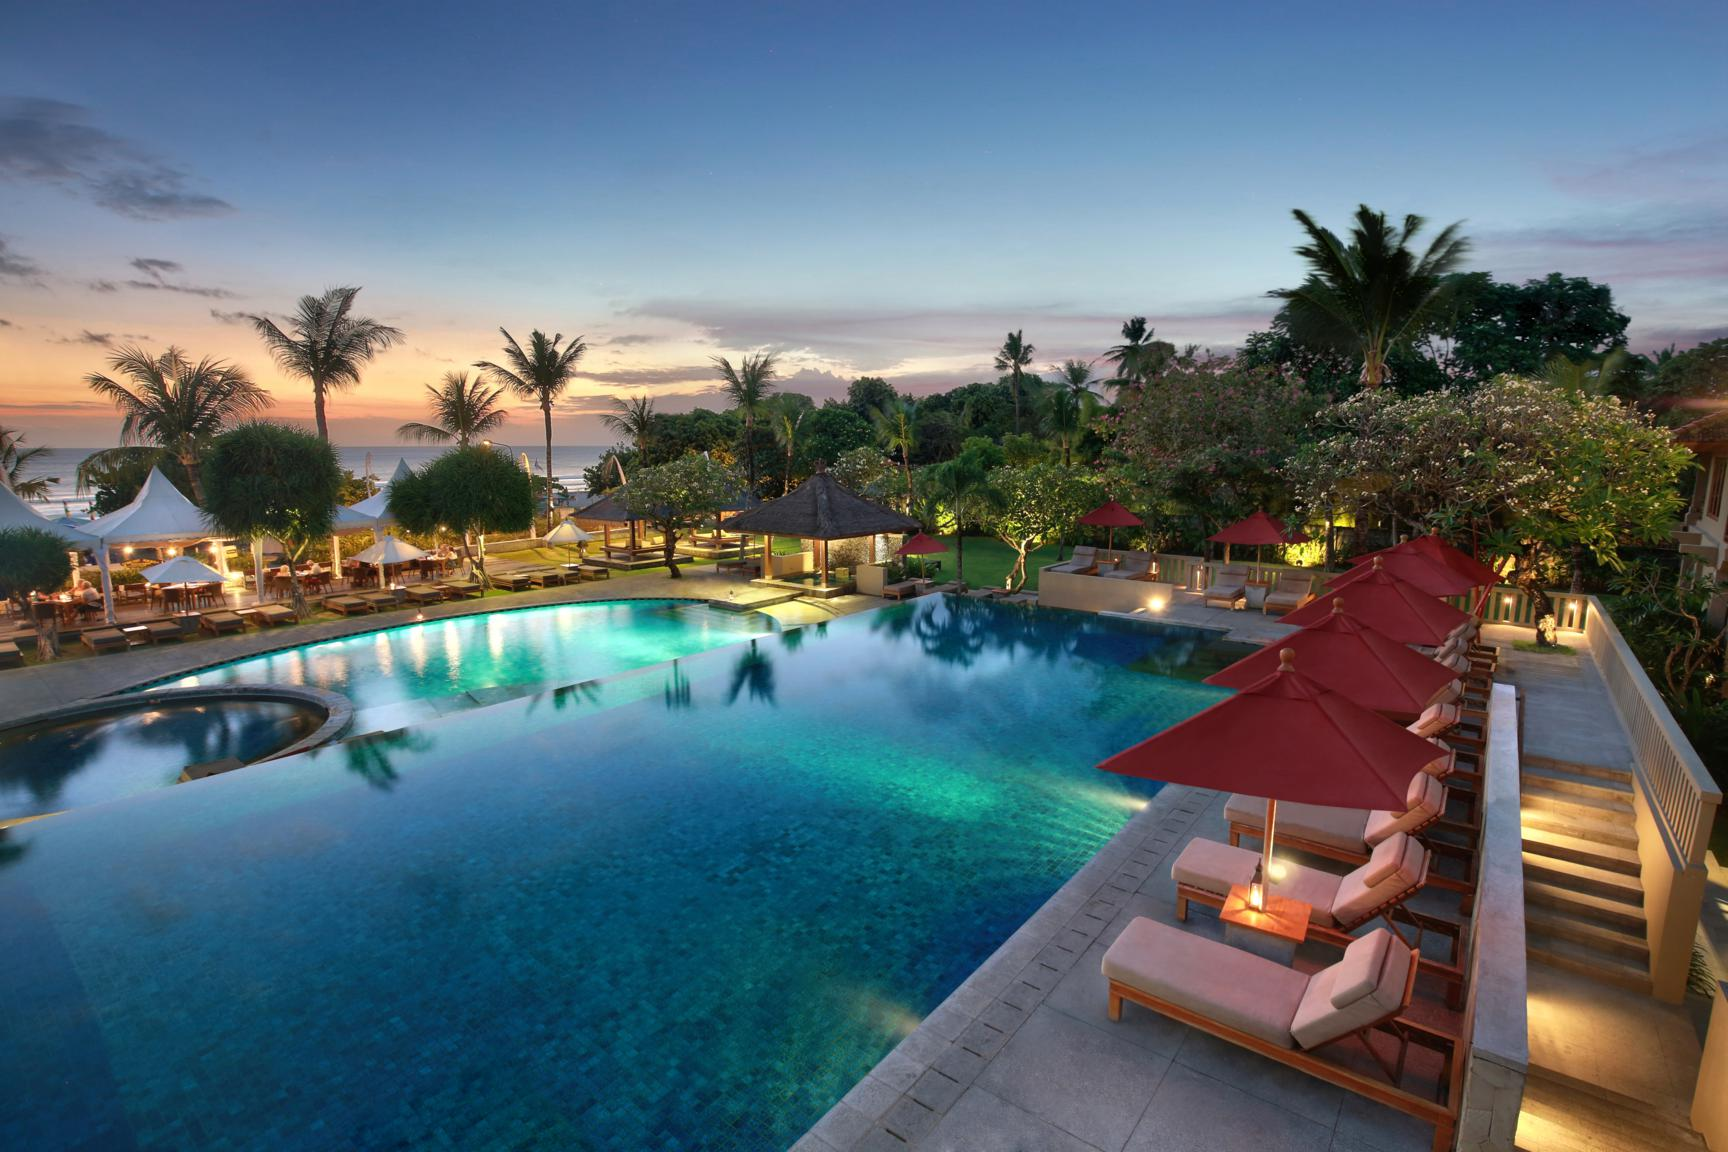 Legian Hotels: The Best Bali Accommodation for Everyone and Budget